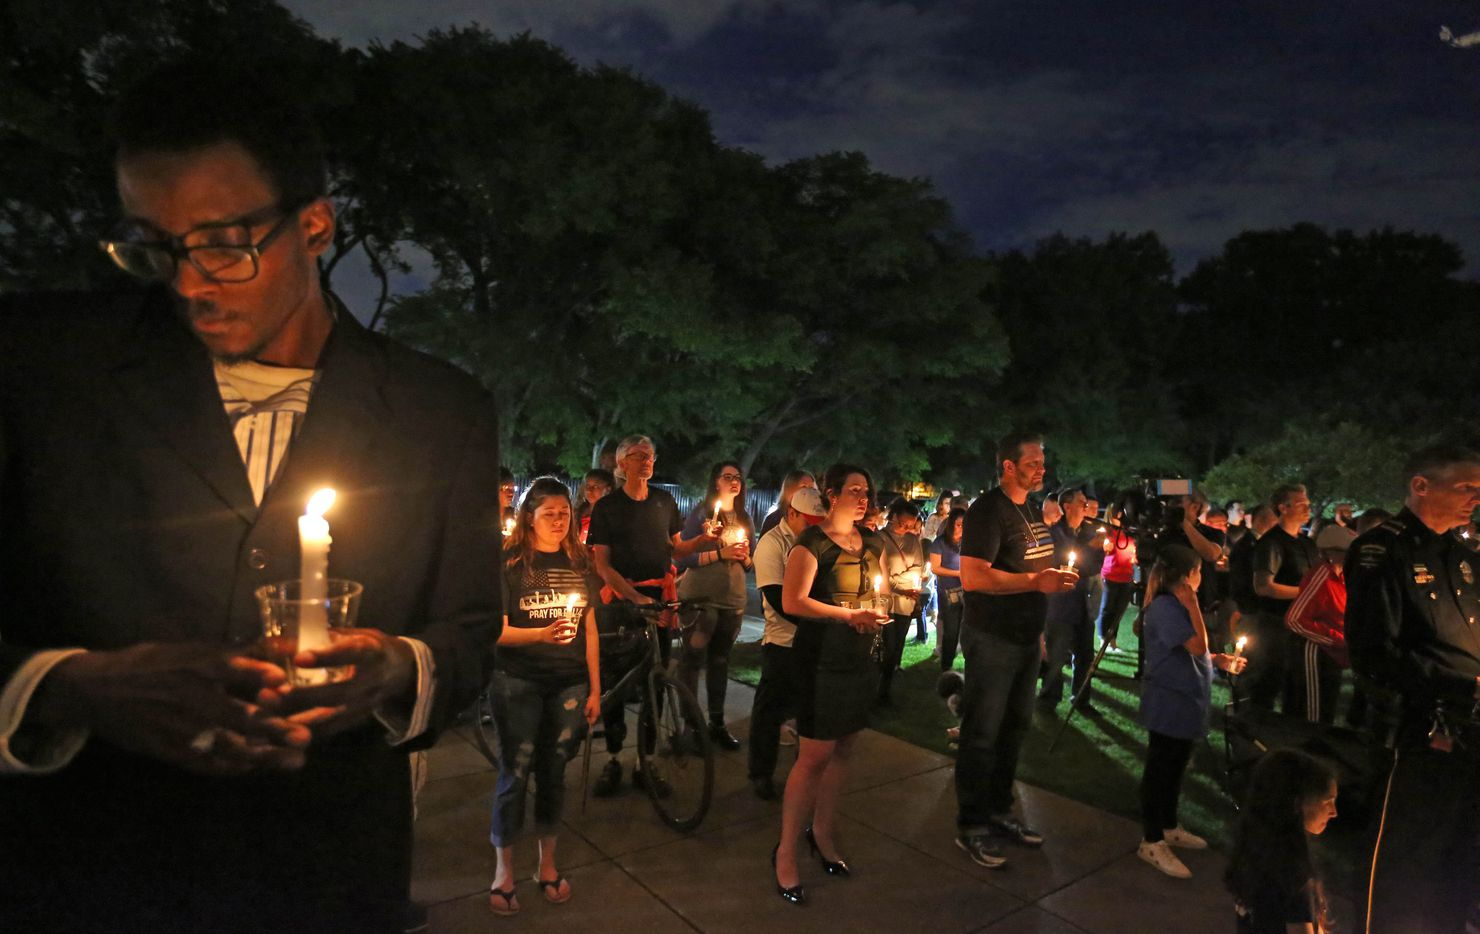 Area residents turn out to show their support at a candlelight vigil to support Dallas Police Officer Crystal Almeida, and to honor the memory of Officer Rogelio Santander, Jr., held at the Dallas Police Northeast Division substation on Thursday, April 26, 2018.